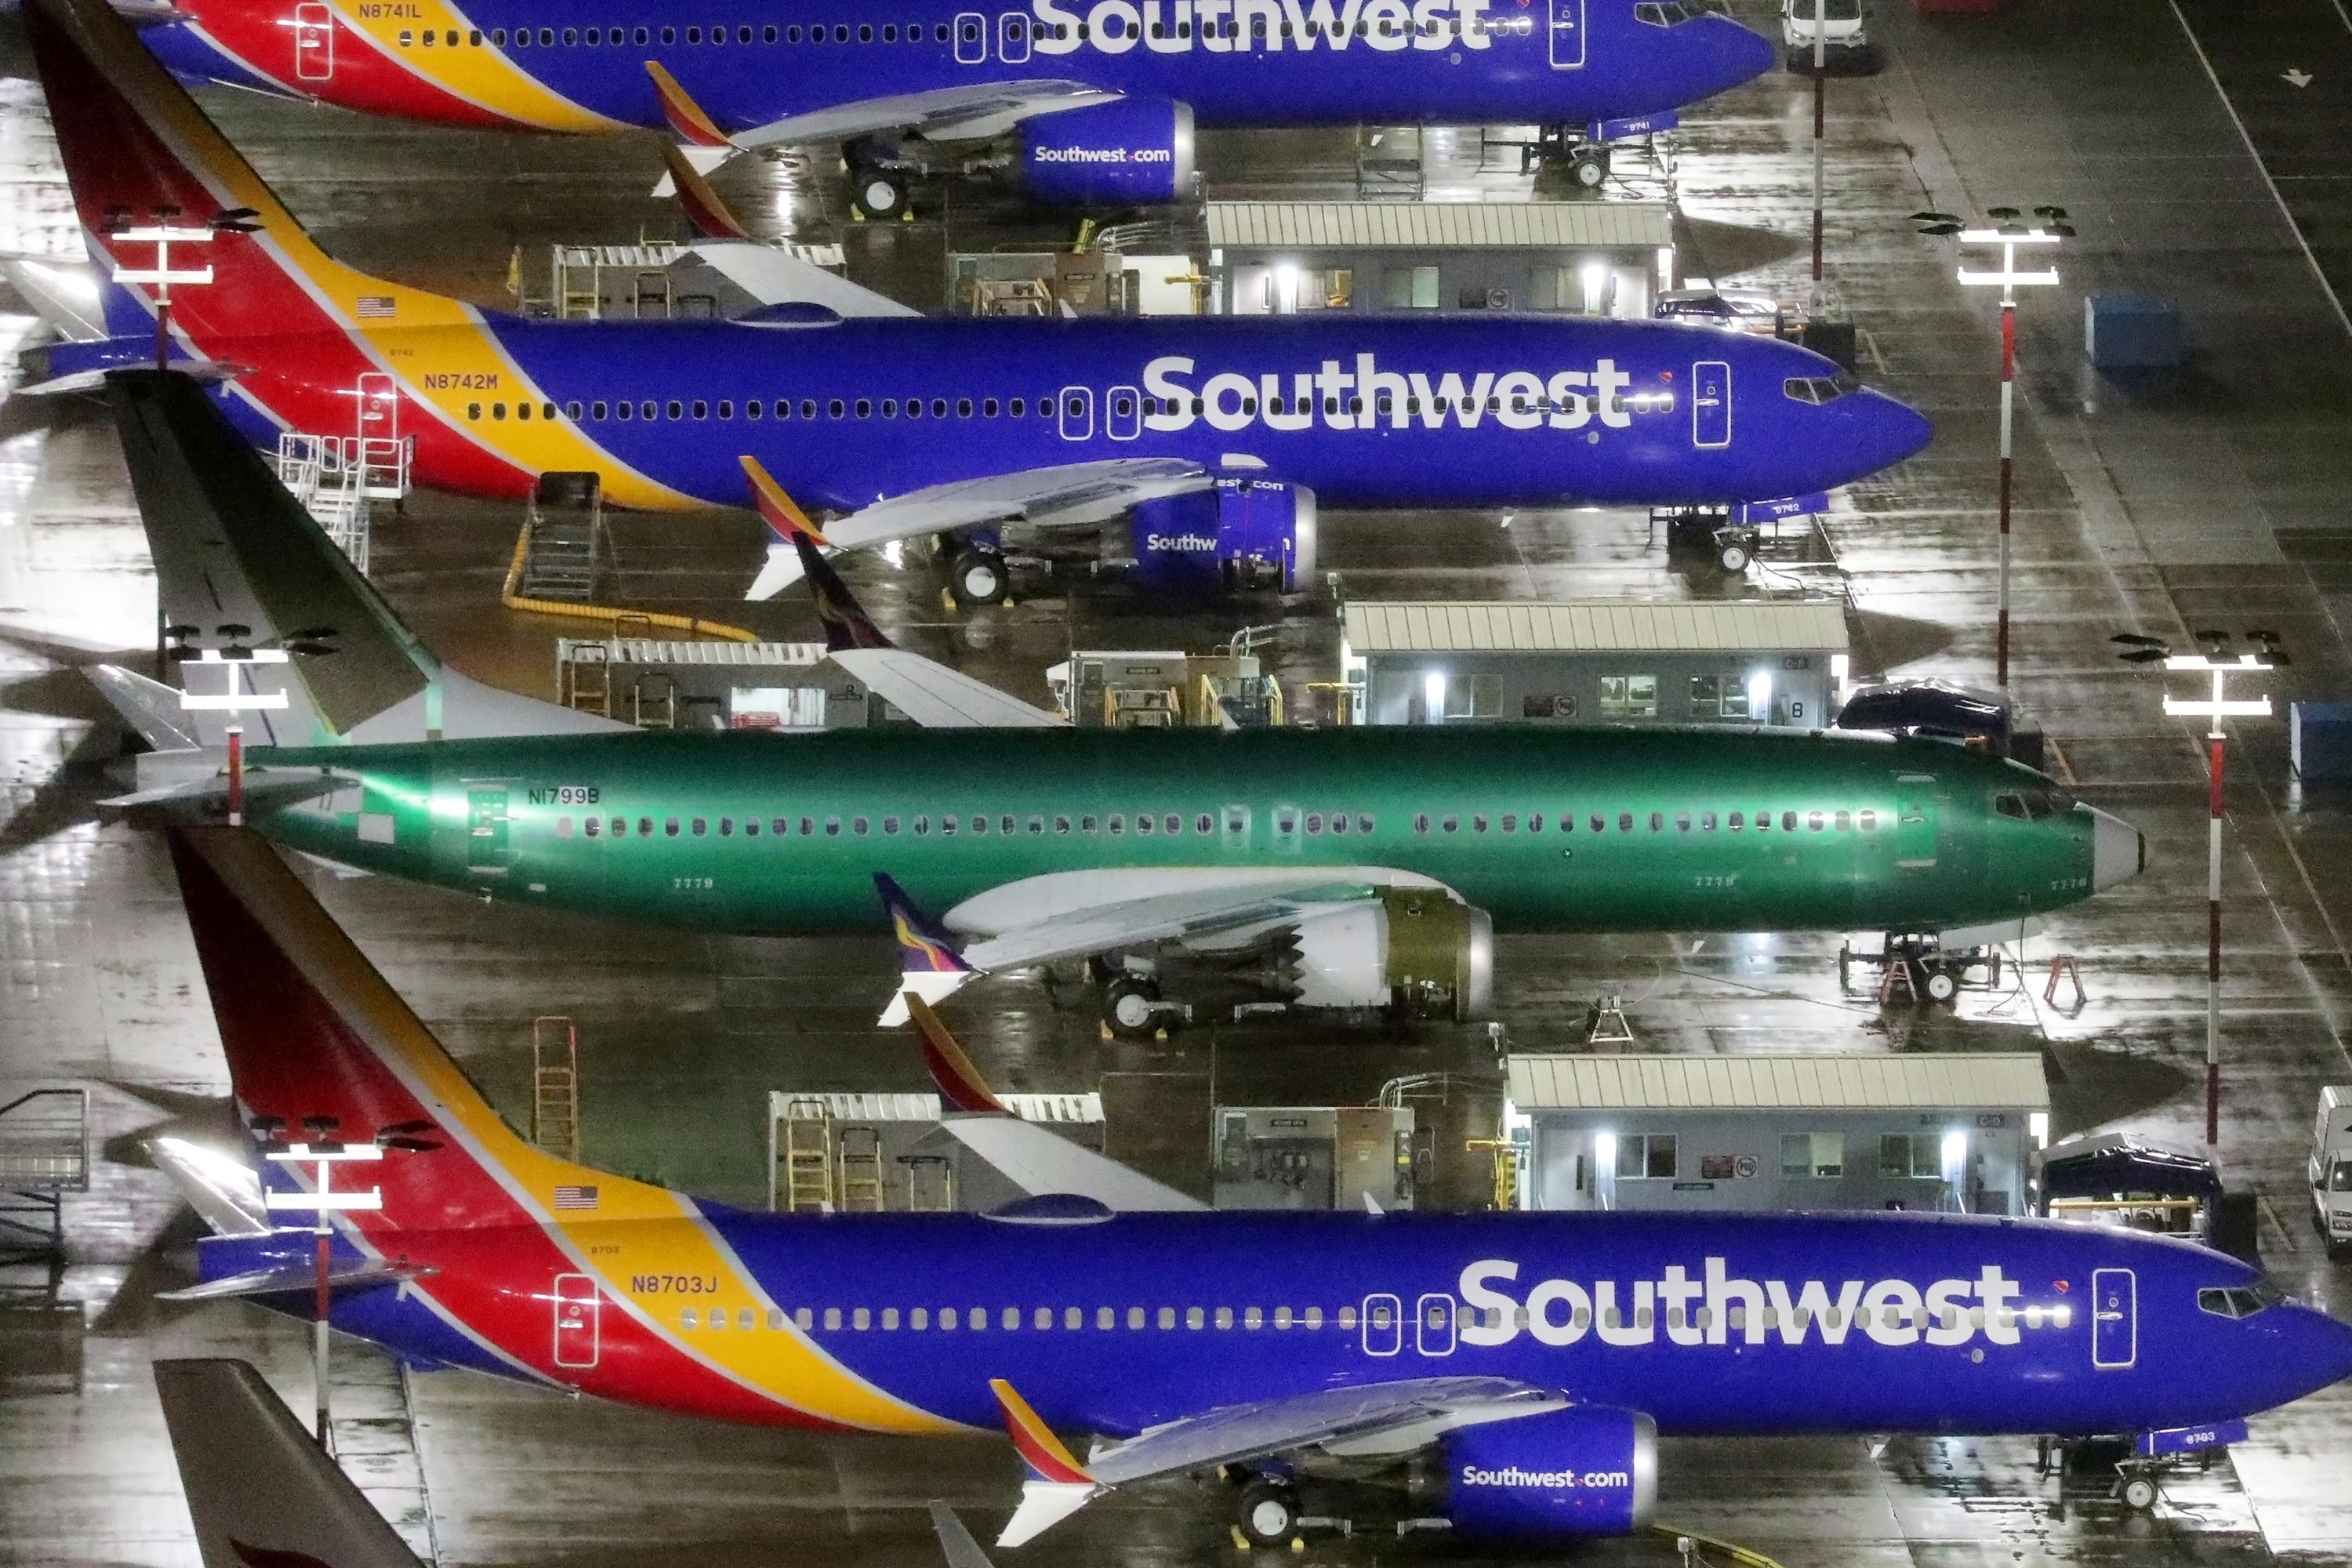 Boeing's head of commercial airplanes to leave company amid 737 Max crisis